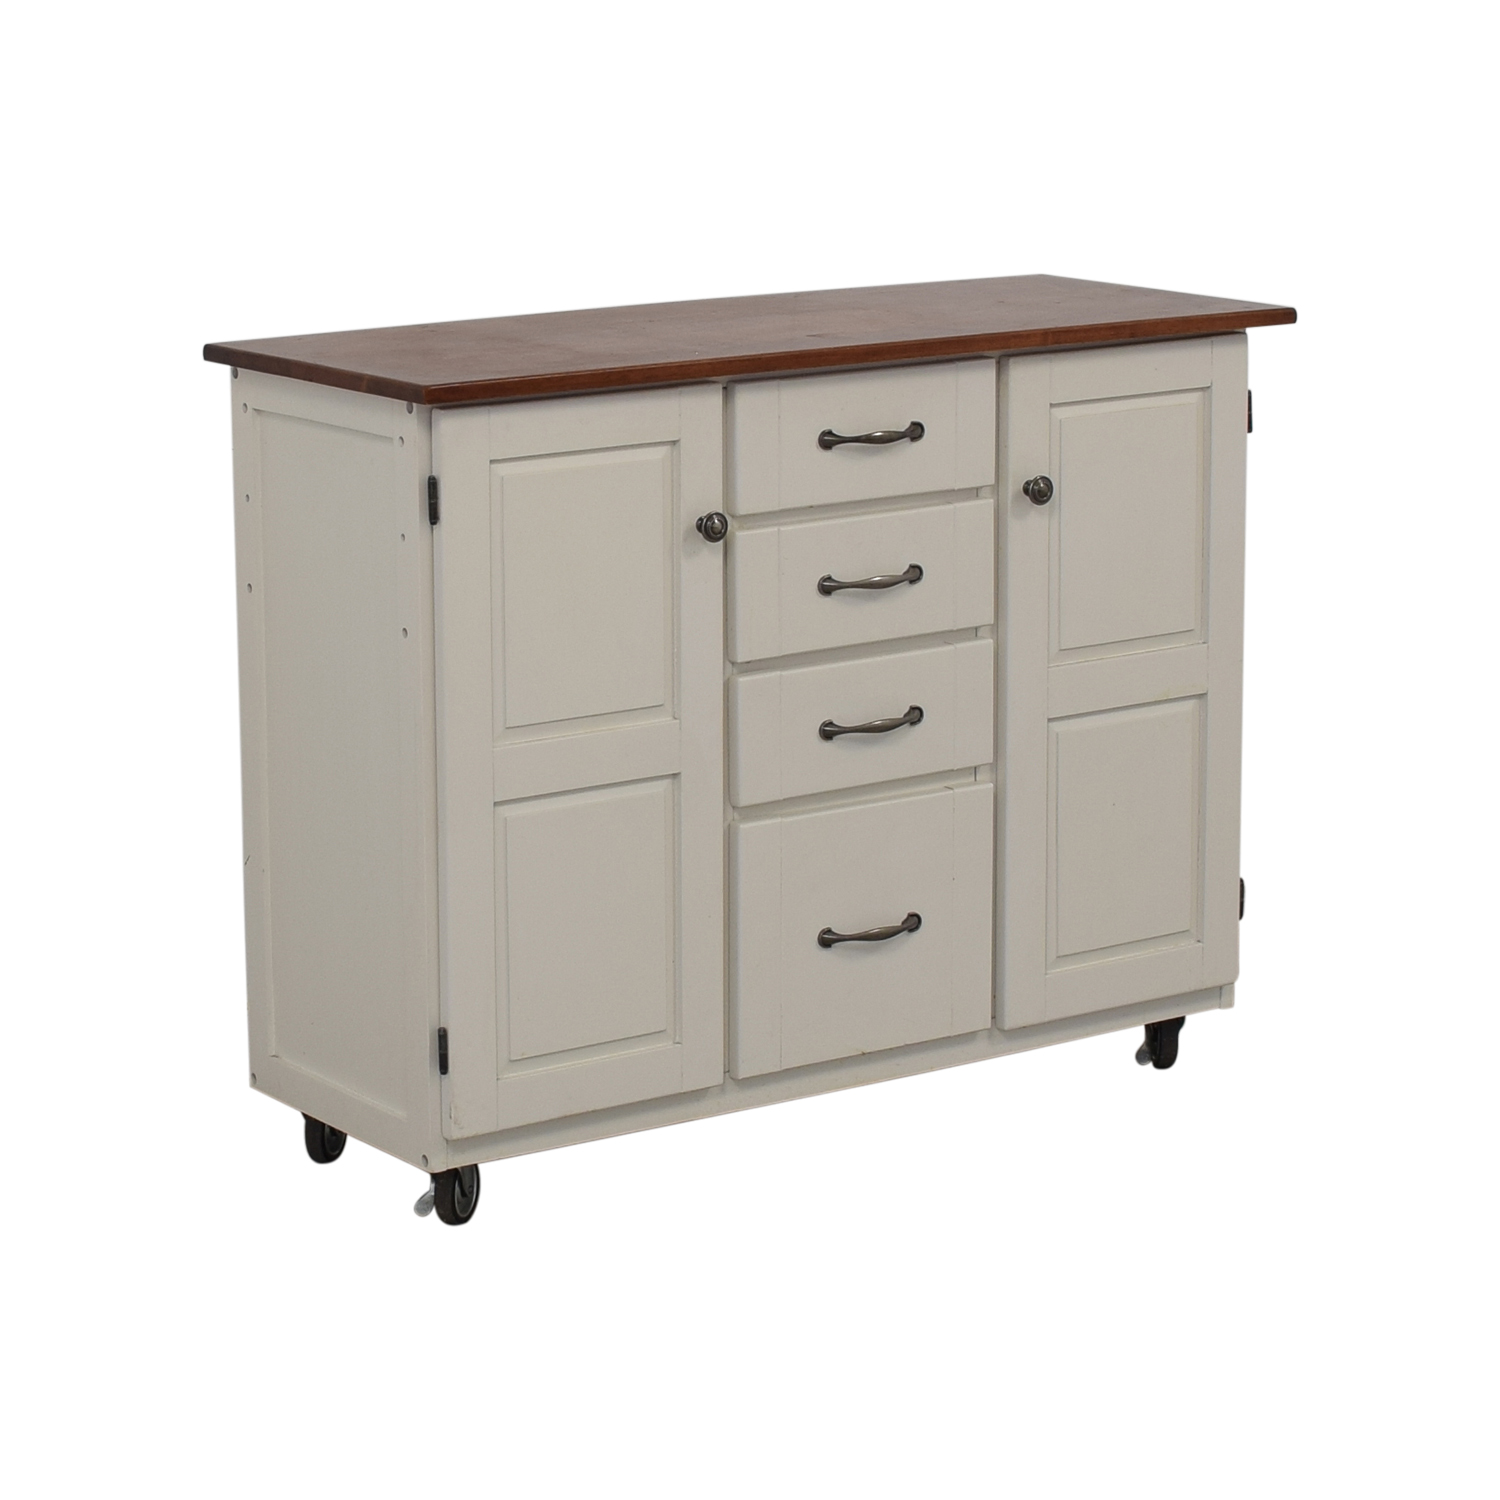 Home Styles Home Styles Kitchen Cart nj